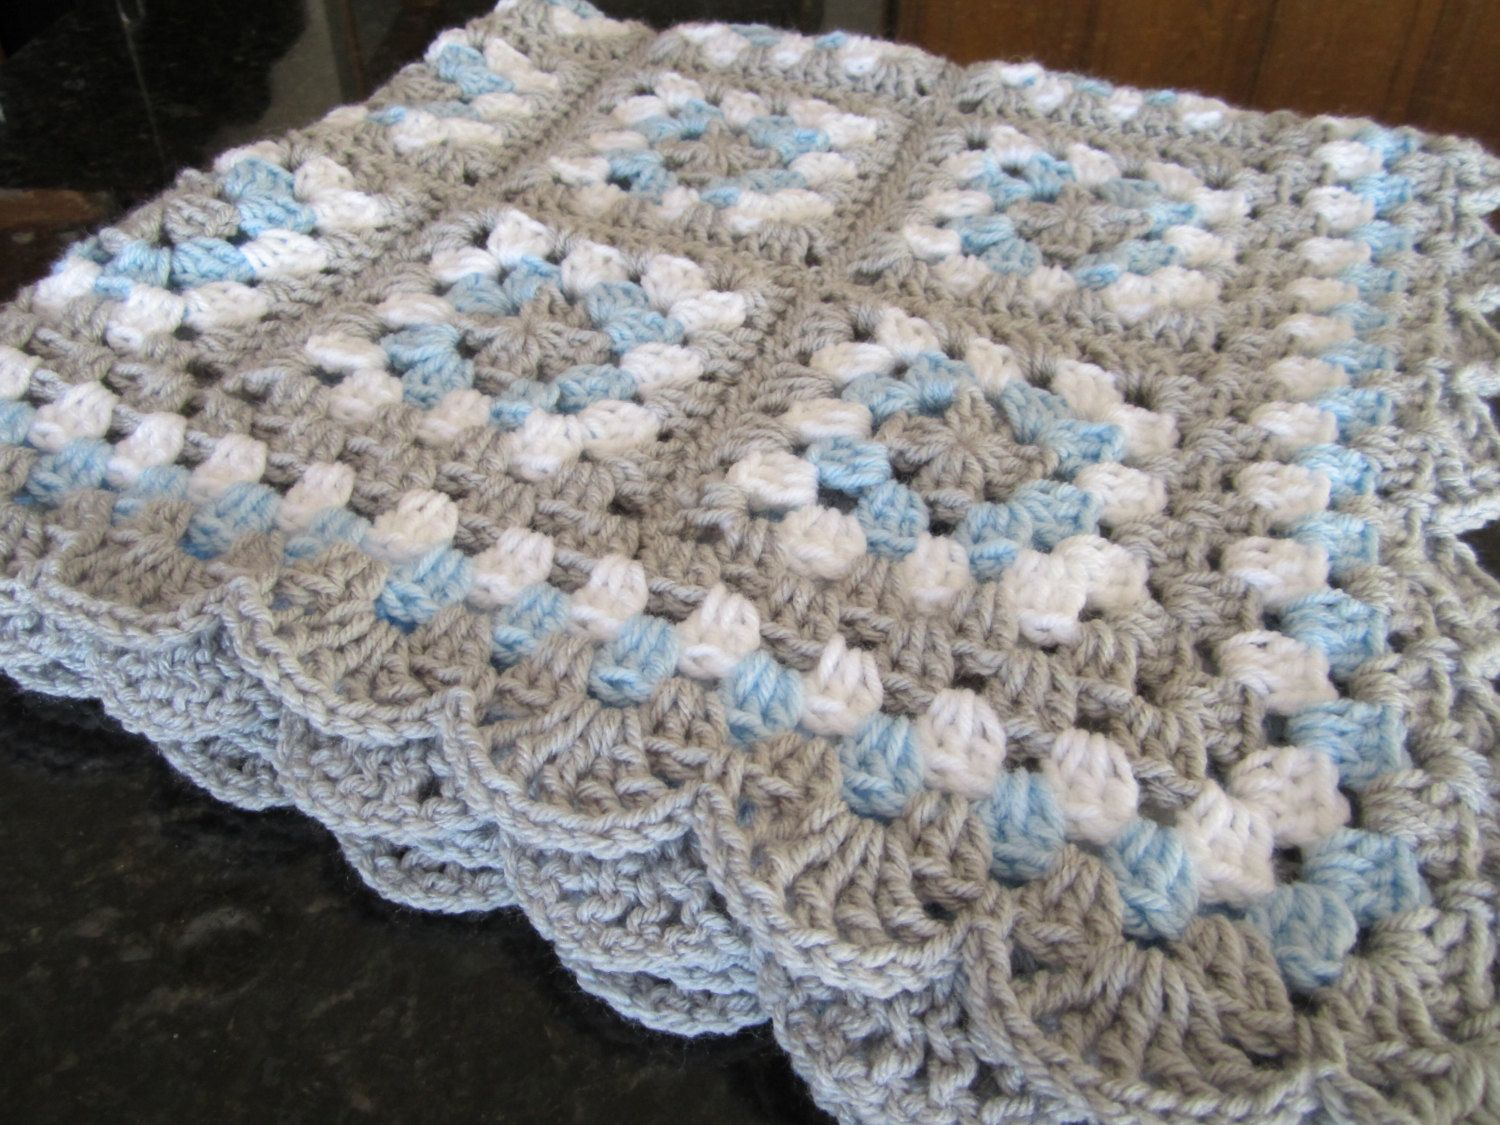 Car baby boy blanket crochet blanket by prairieheartstrings - Crochet Baby Blanket Crochet Baby Afghan Granny Square Handmade Baby Blanket New Baby Nursery Decor Ready To Ship